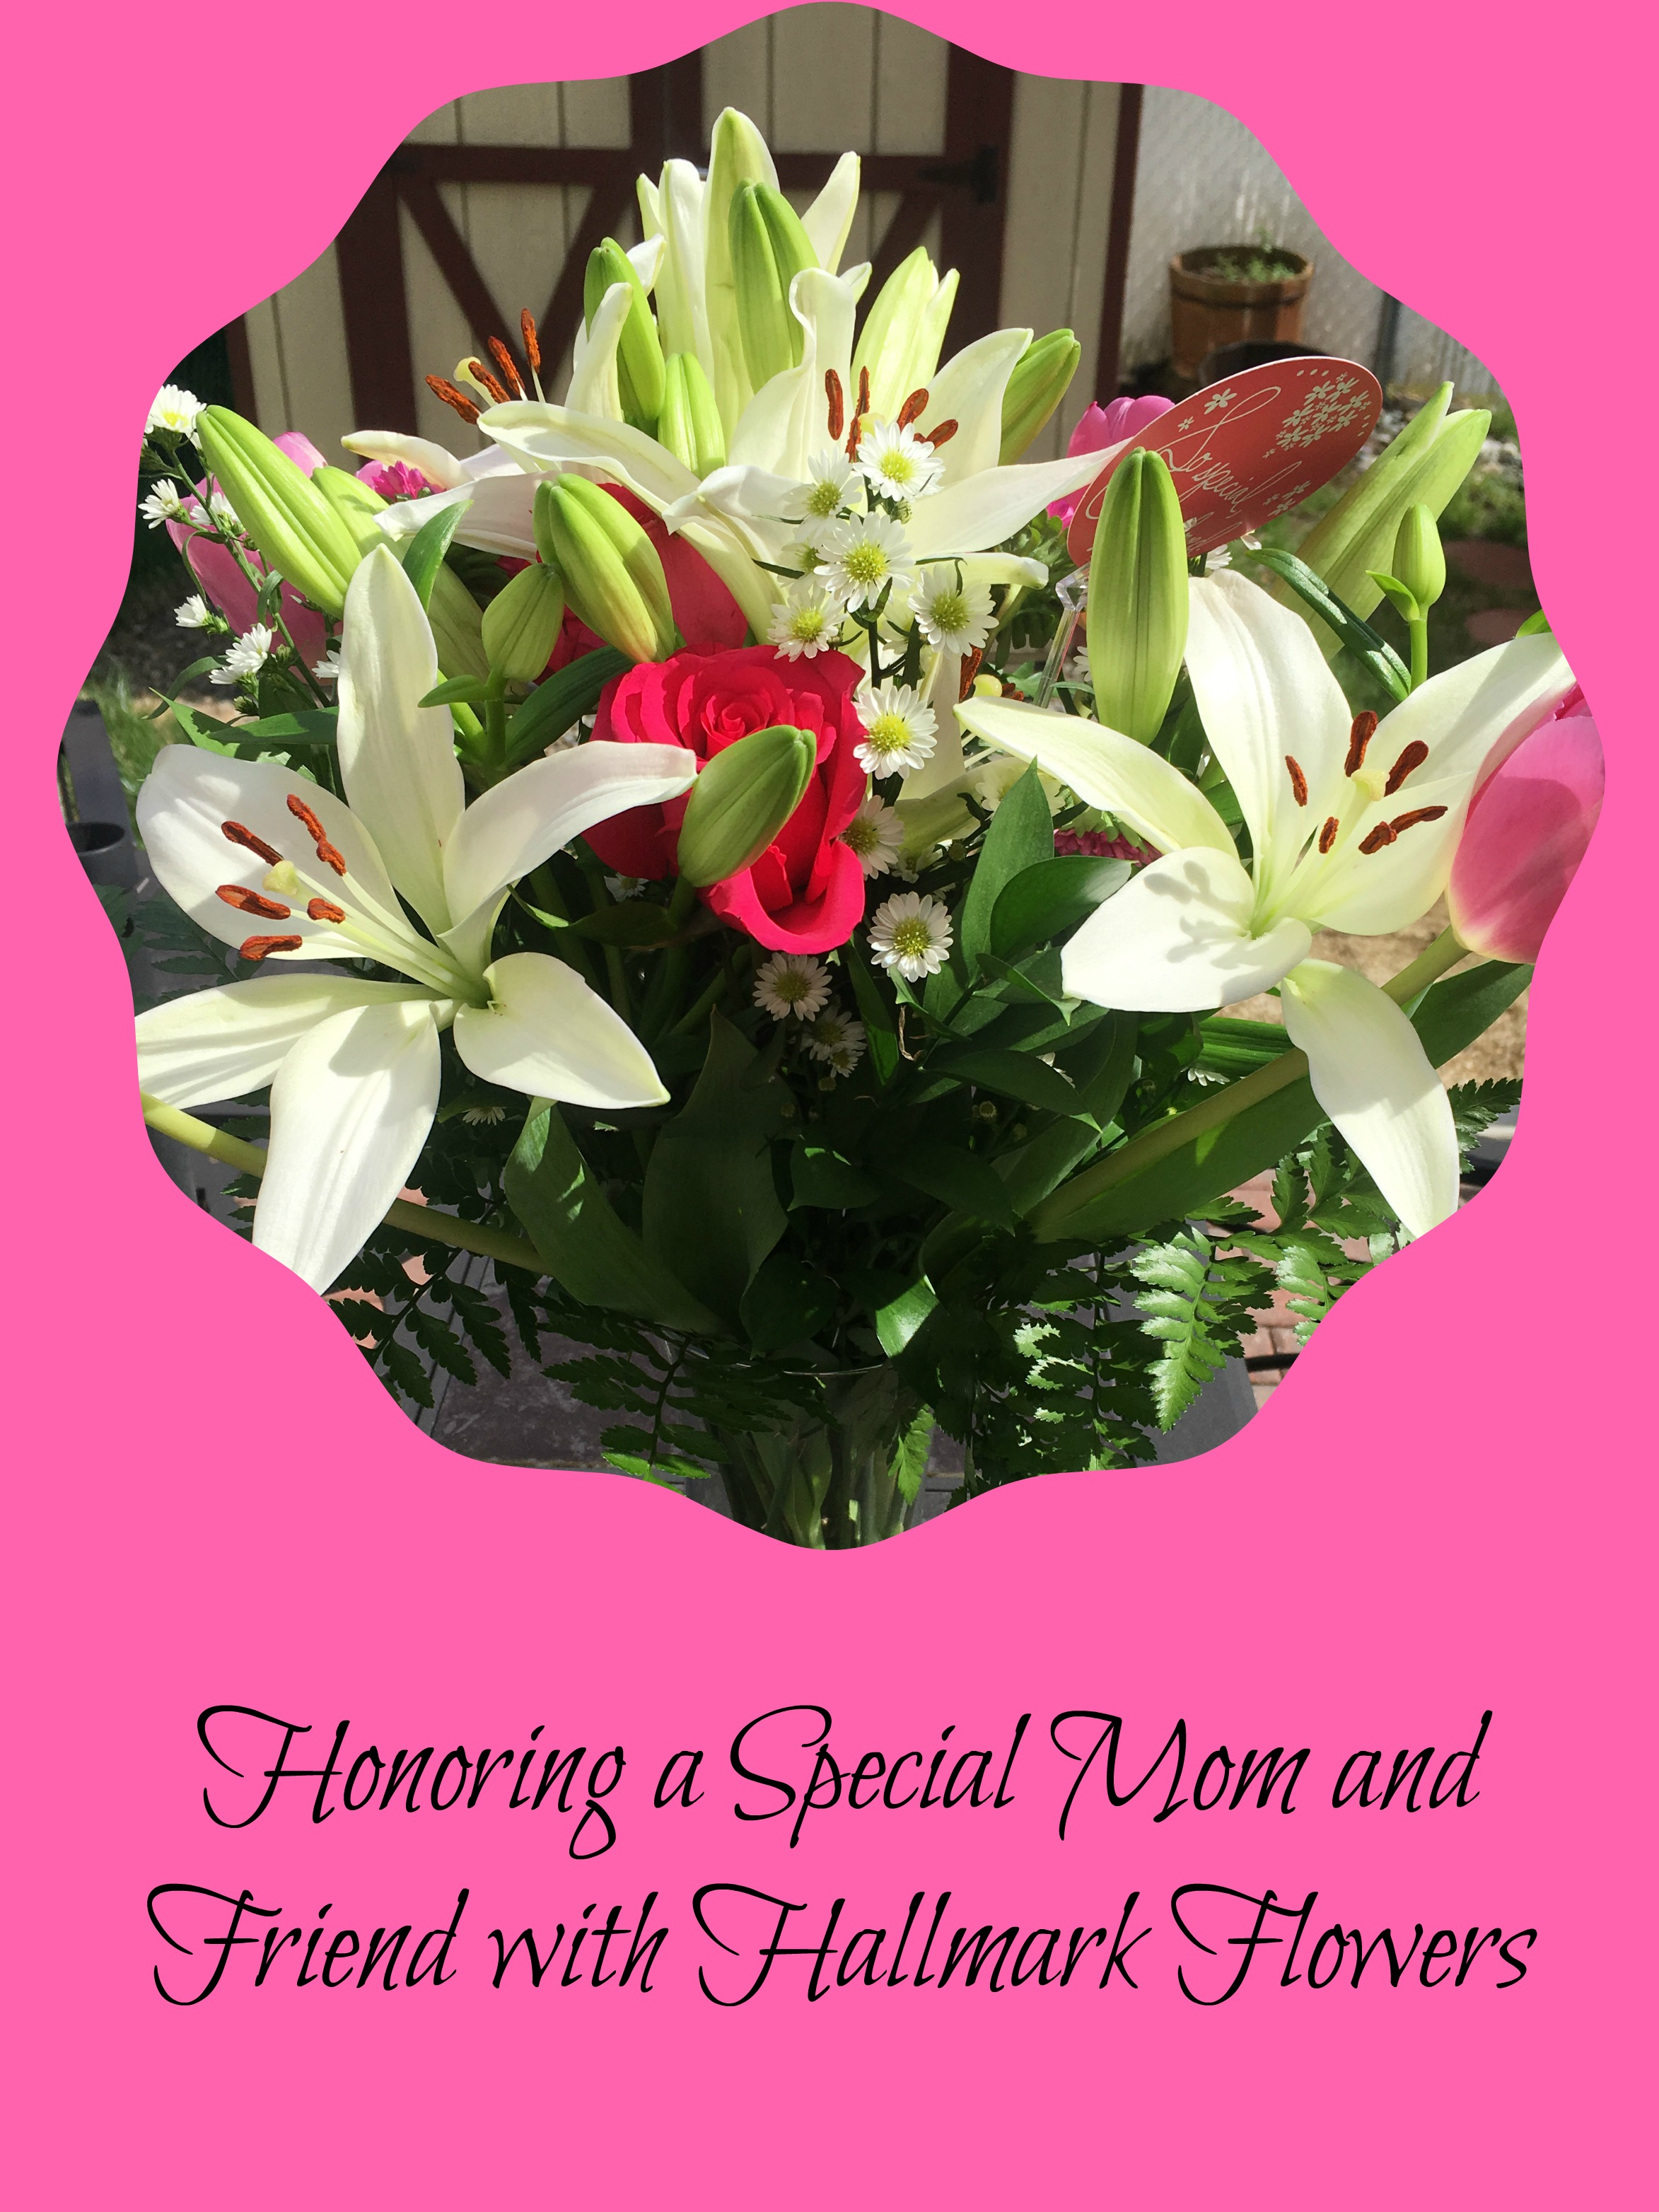 Honoring A Special Mom And Friend With Hallmark Flowers: hallmark flowers